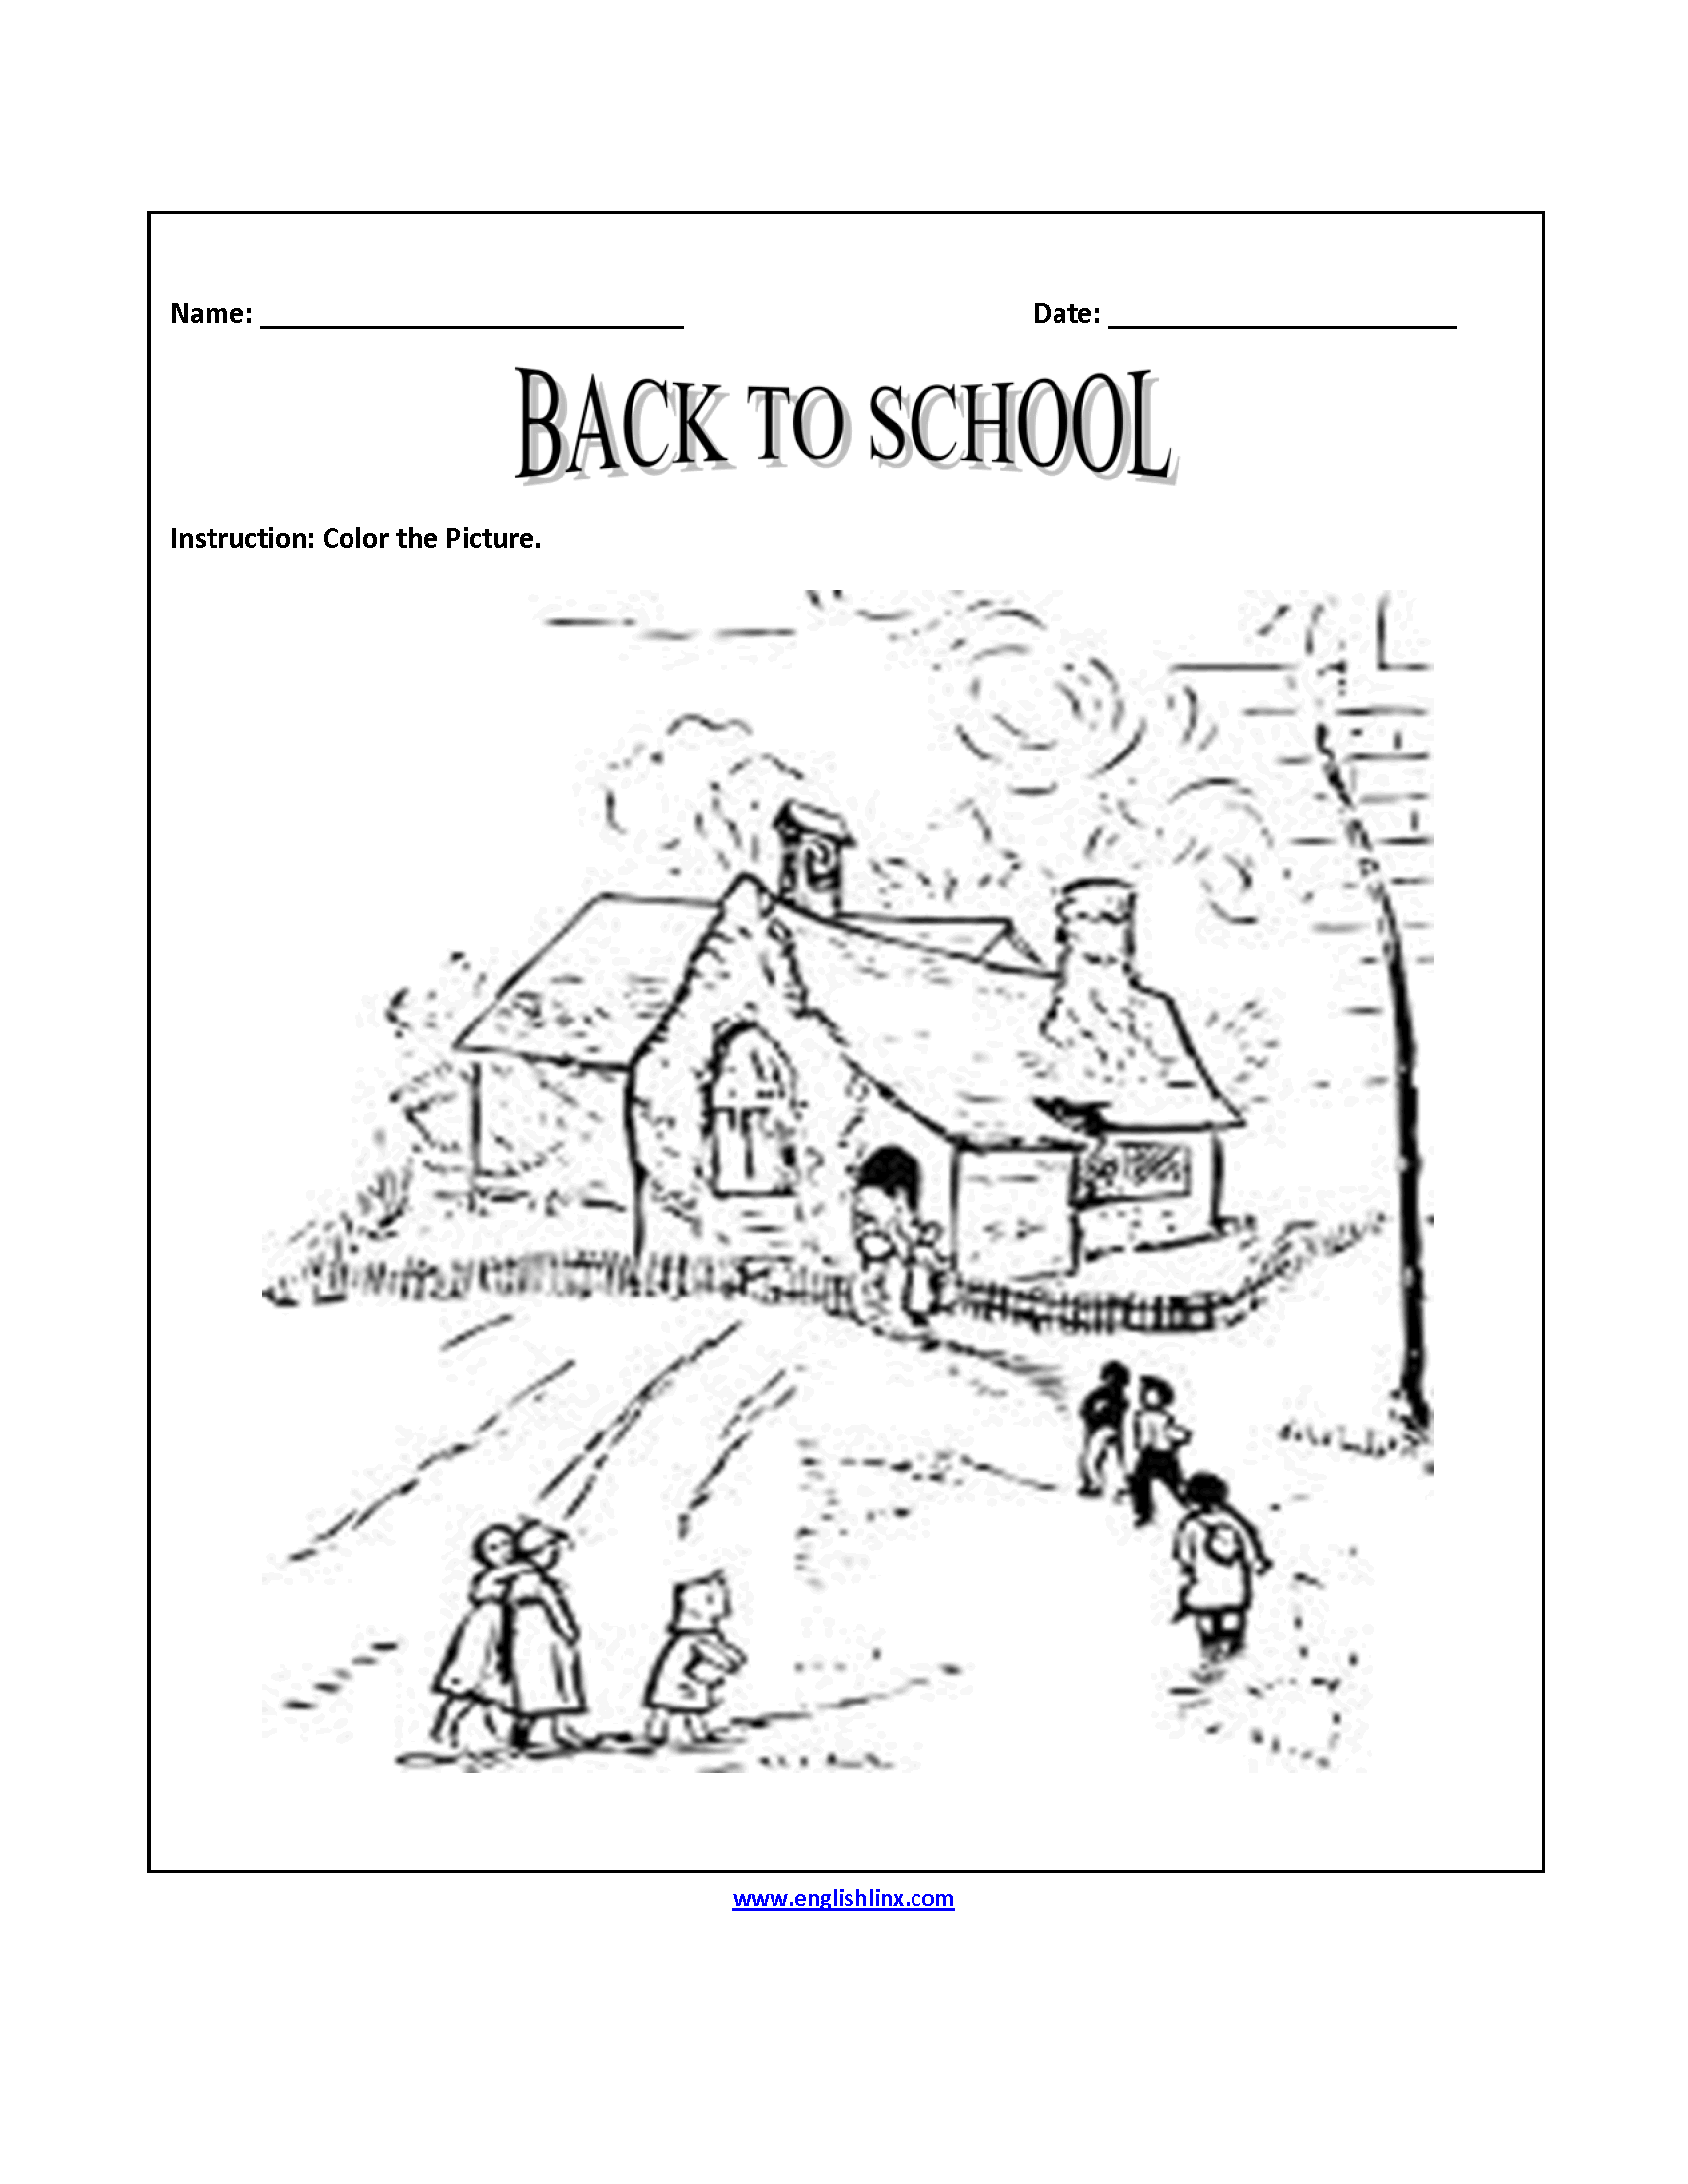 Back to School Worksheets | Back to School Coloring Page Worksheets